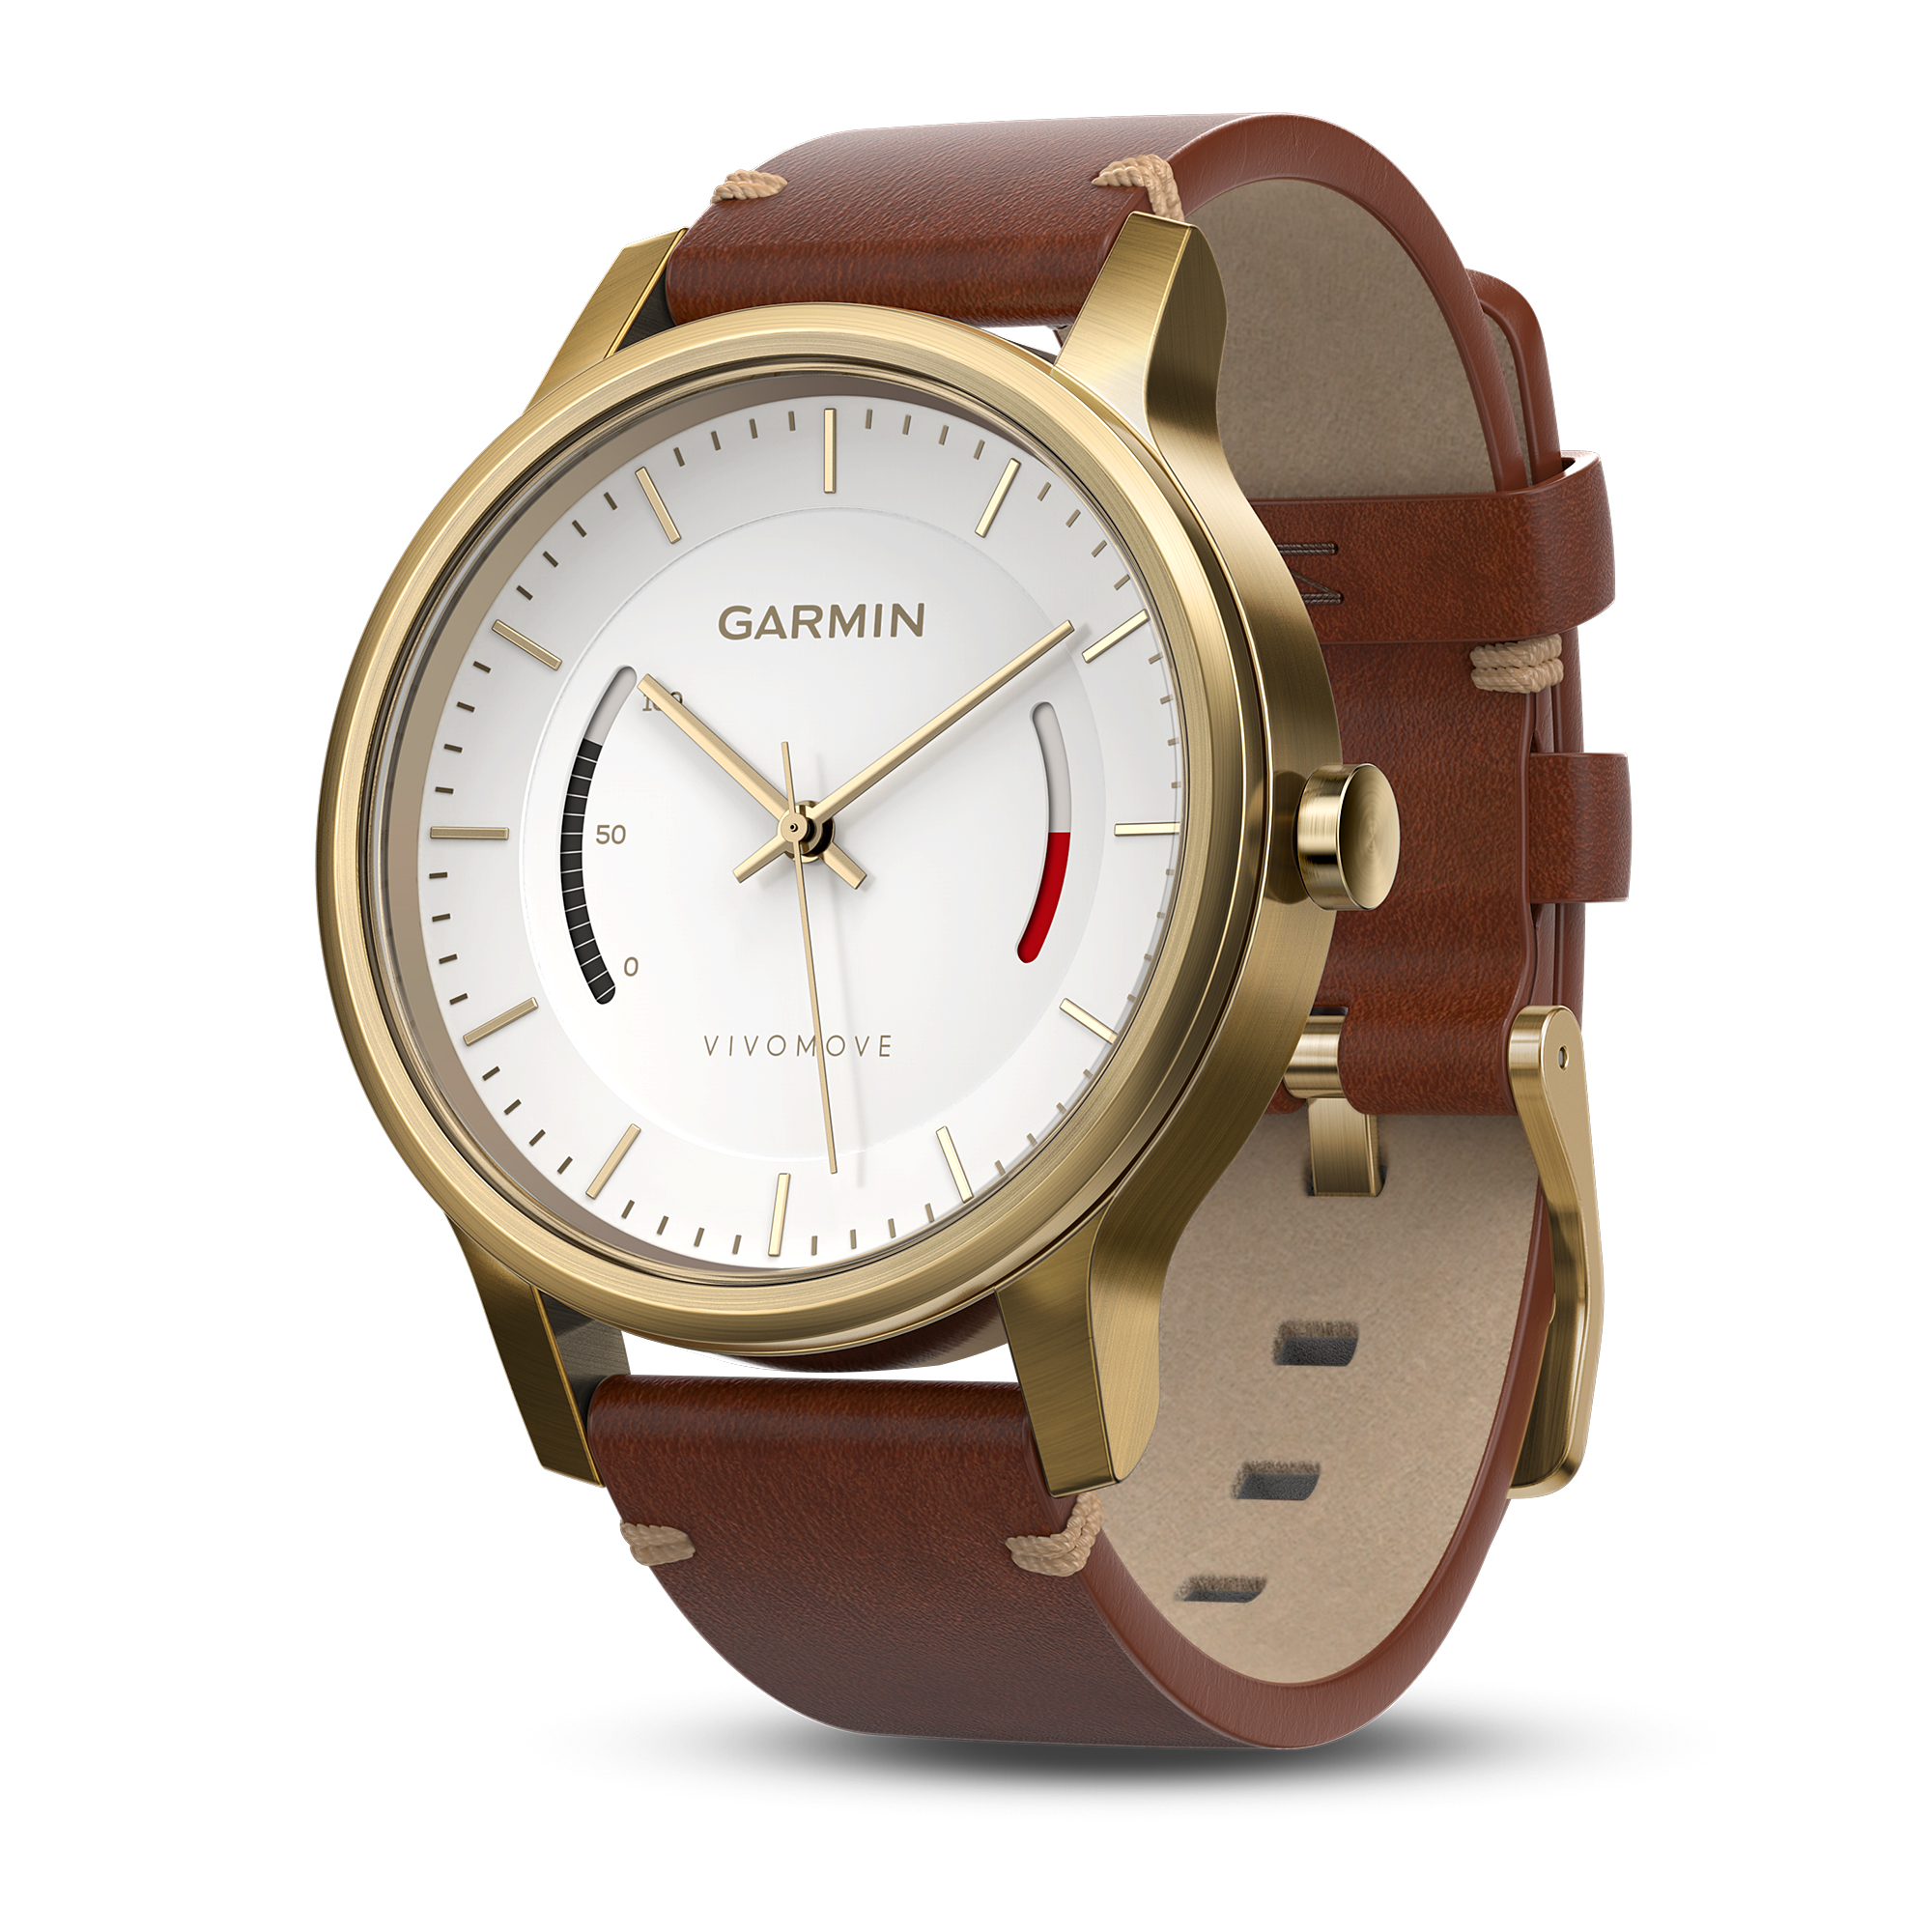 560c5155618 Details about Garmin Vivomove Premium Activity Tracking Watch Gold-Tone  Steel w  Leather Band